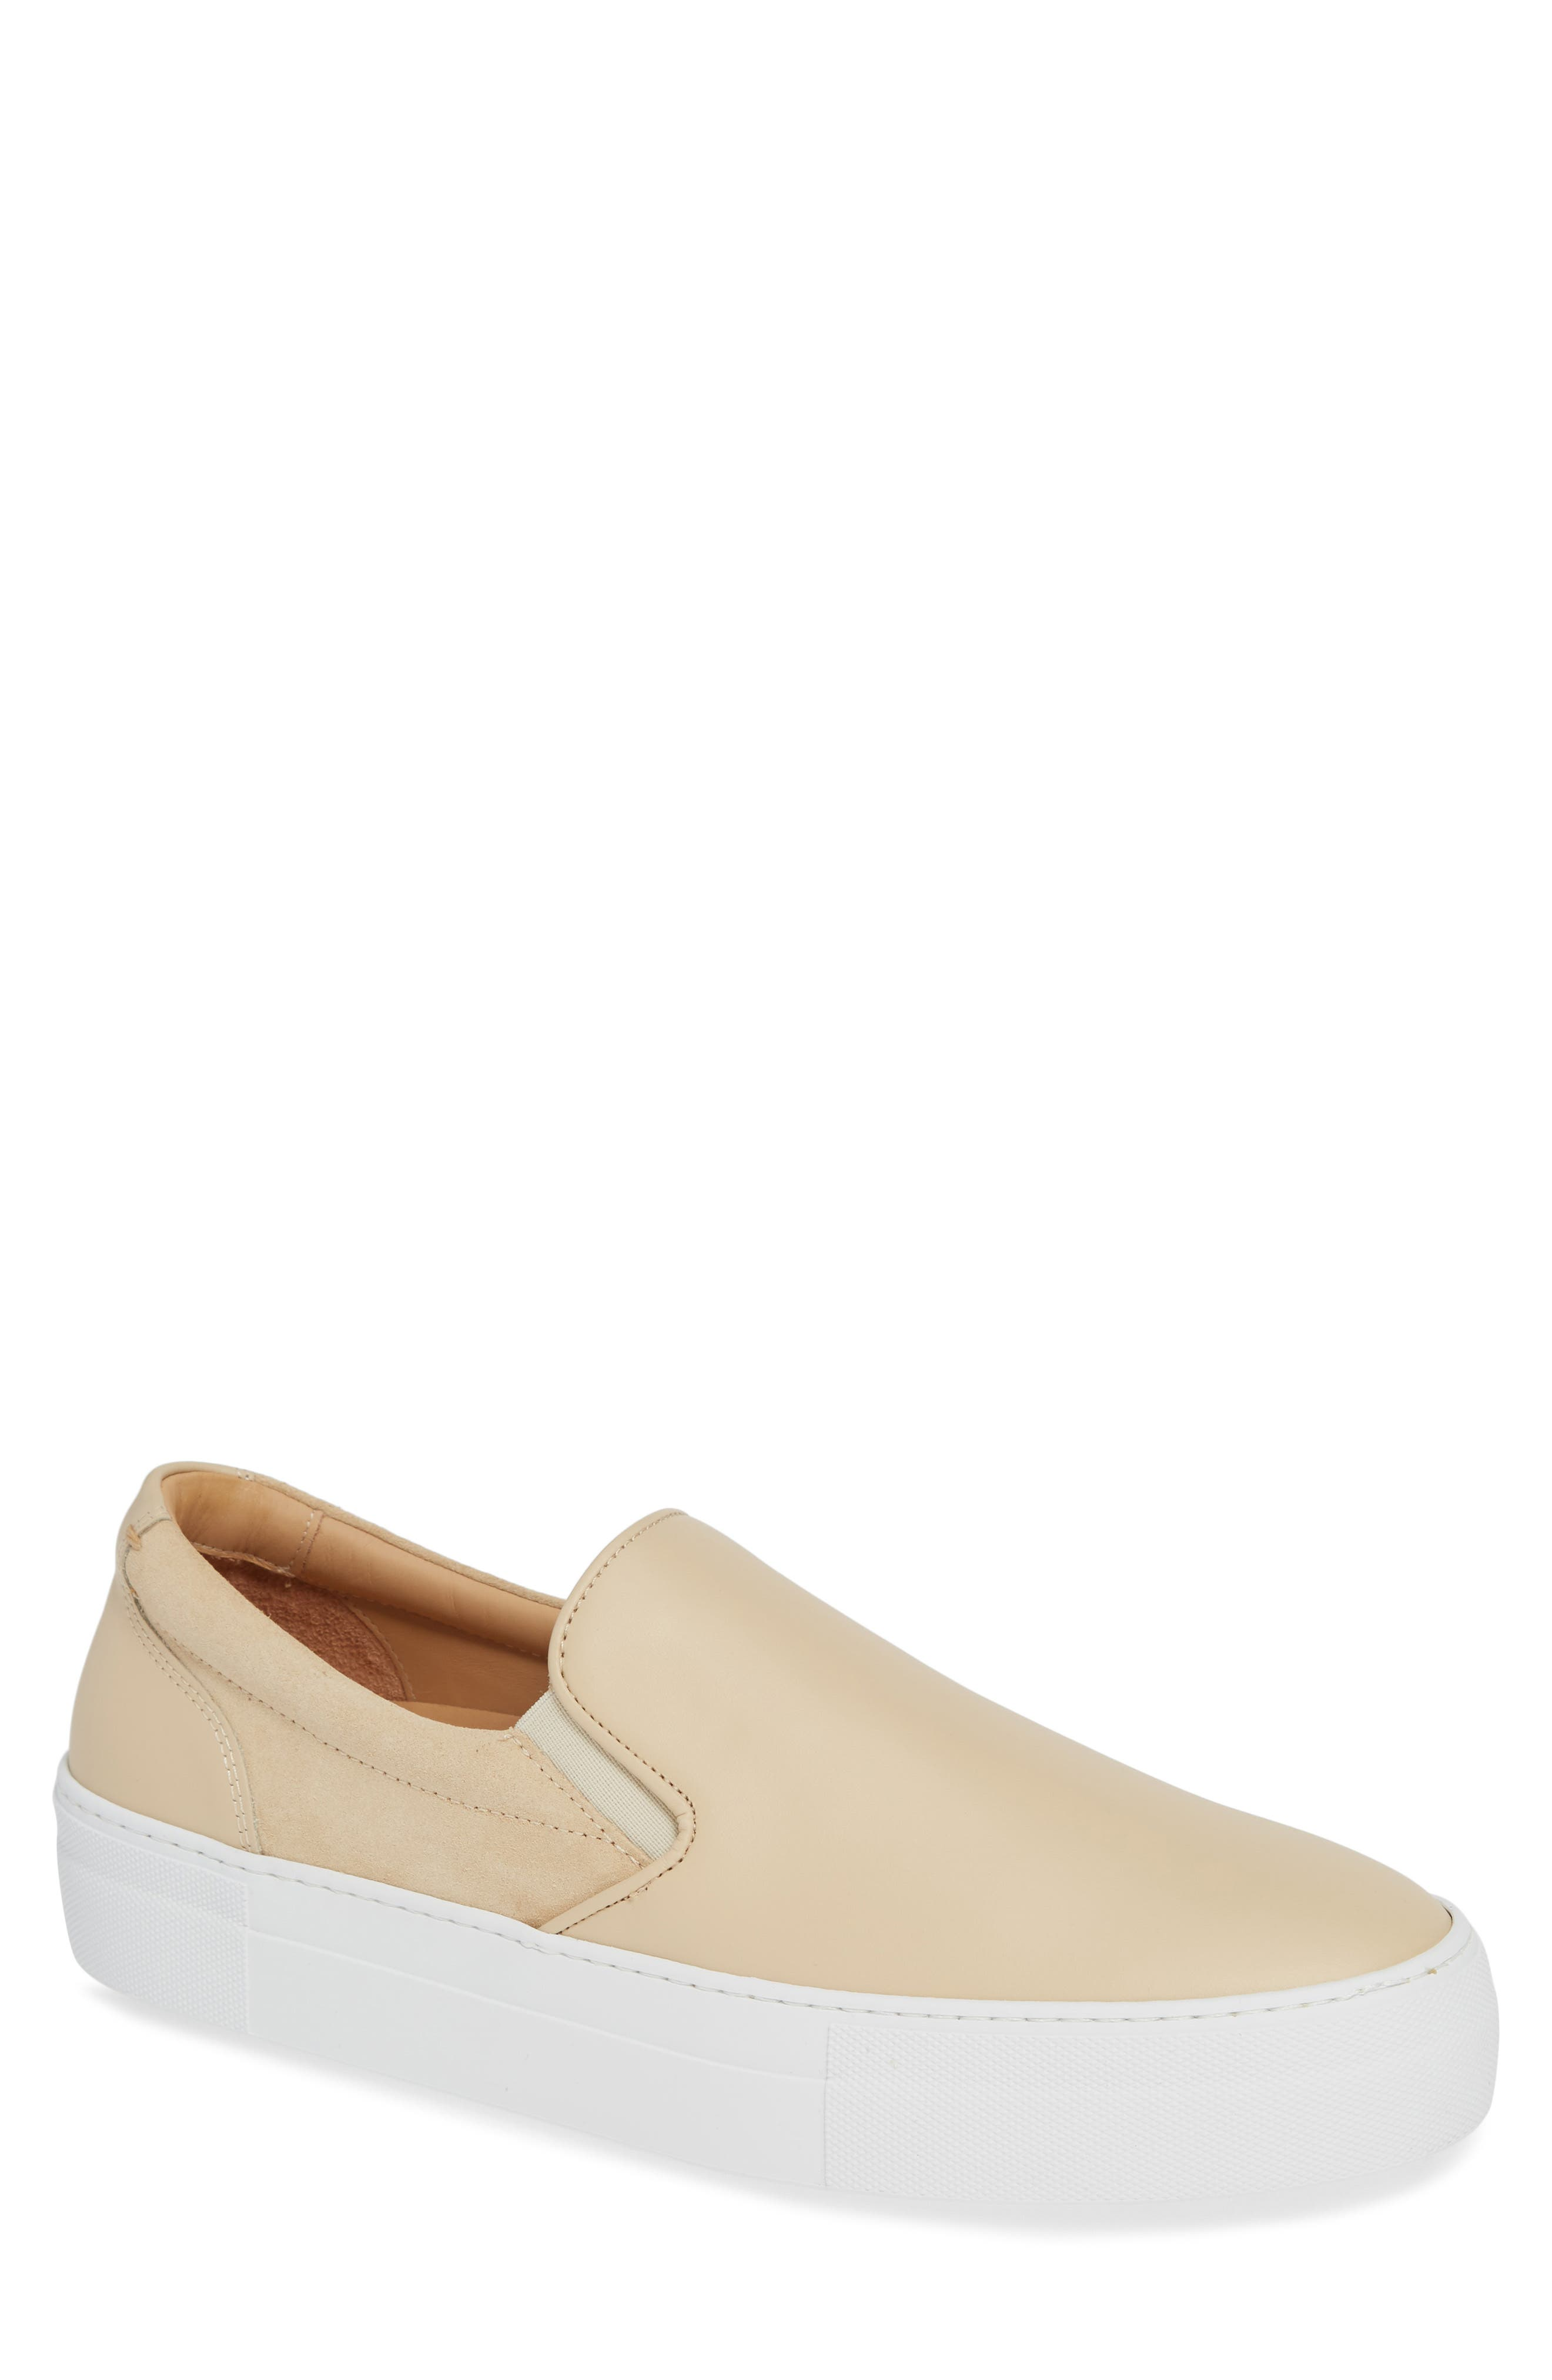 x Nick Wooster Stacker Slip-On,                             Main thumbnail 1, color,                             NEUTRAL BEIGE